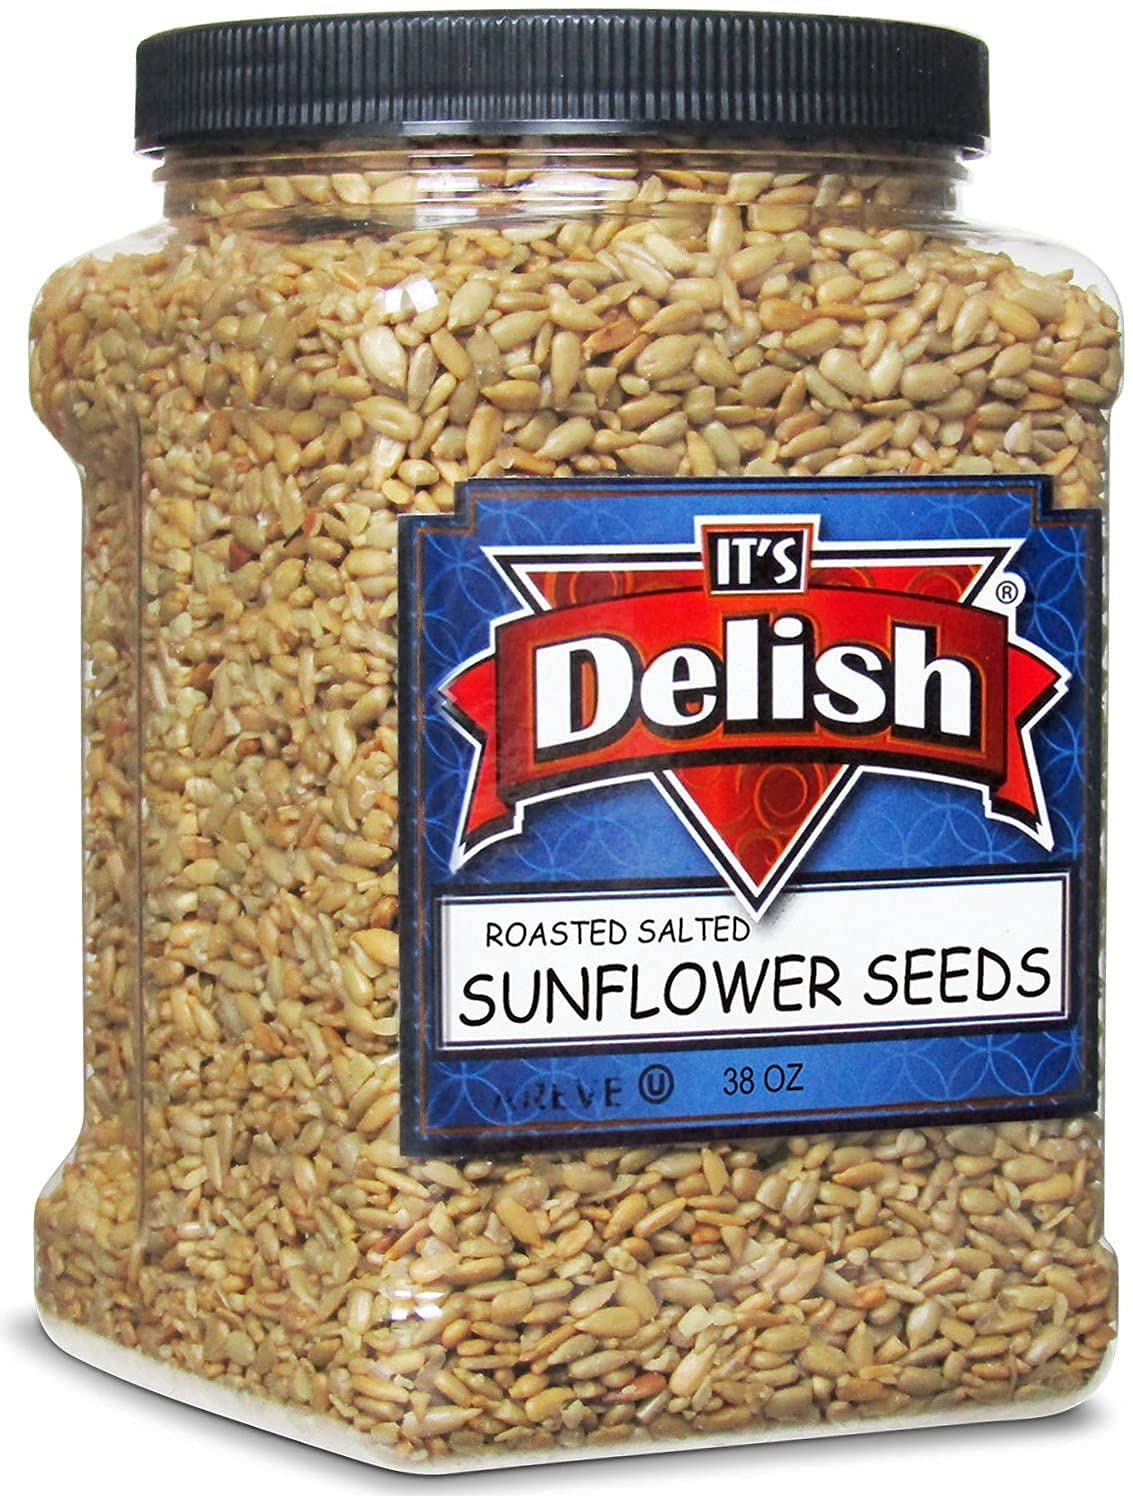 Gourmet Roasted Surprise price Salted Sunflower Seeds by free shipping Delish Oz 38 It's Jum